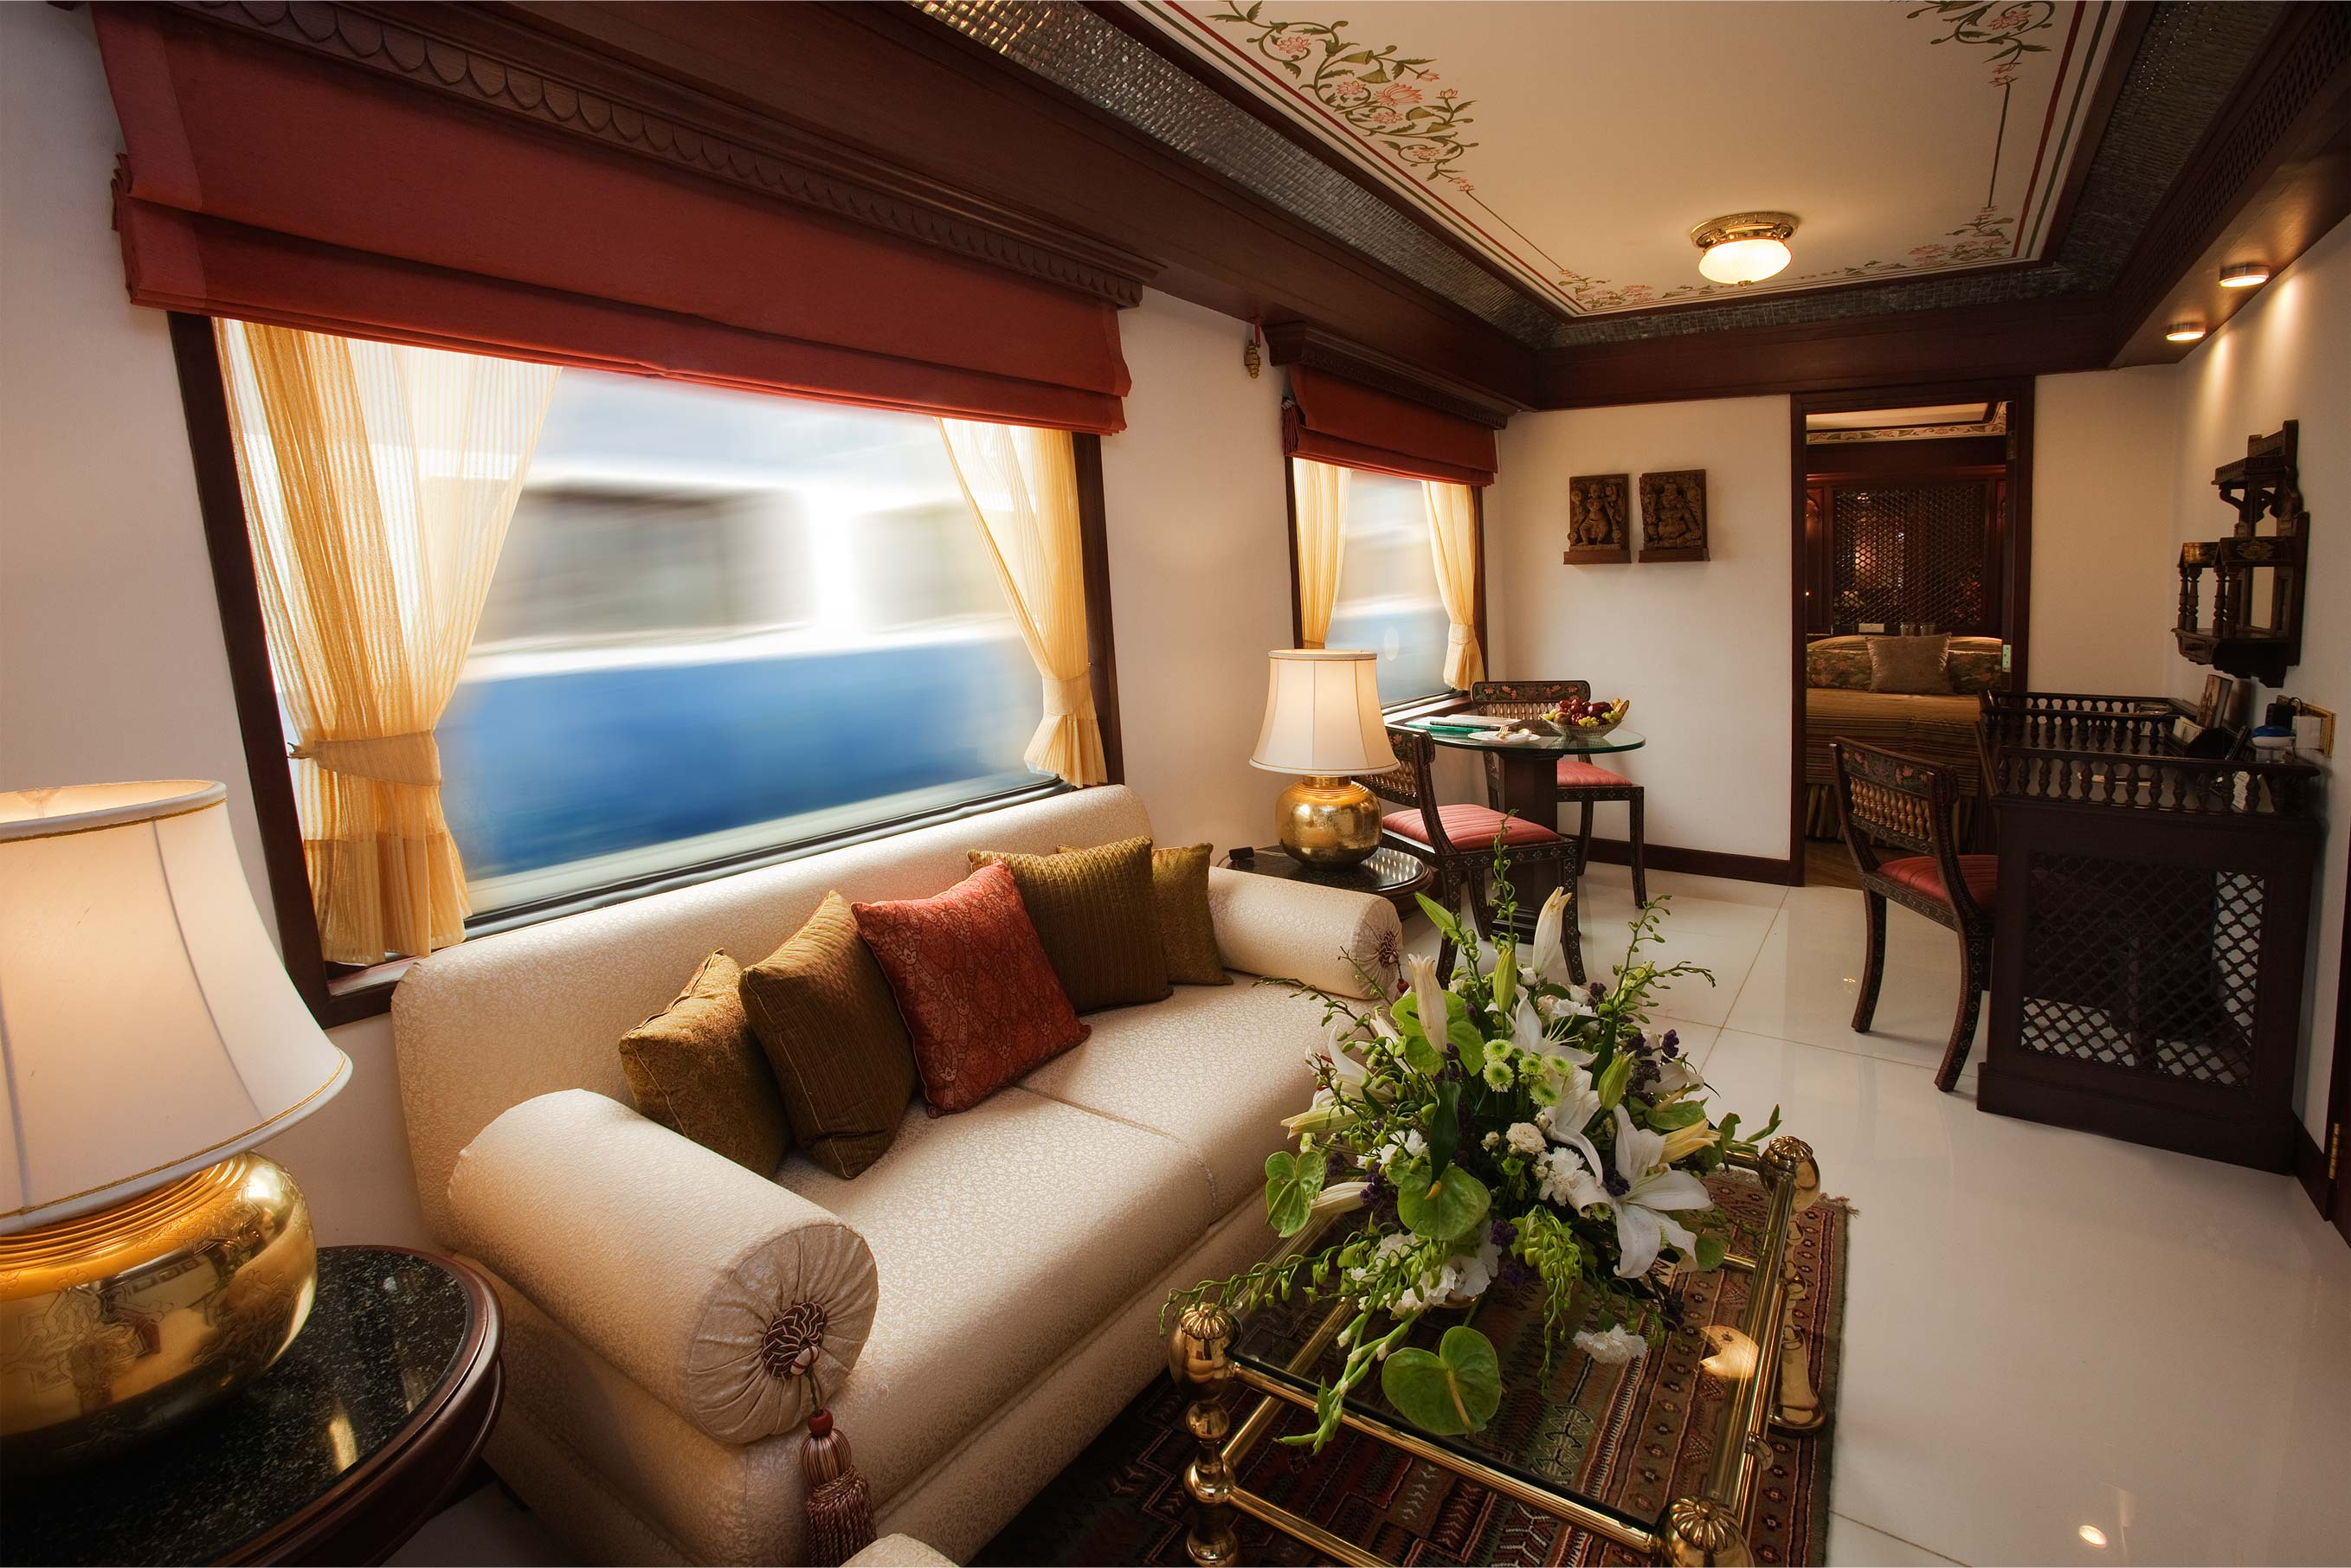 maharajas' express india a royal way Chugging across meticulously selected destinations to give you a glimpse of the  royal heritage of incredible india, the indian splendor tour on board maharajas.